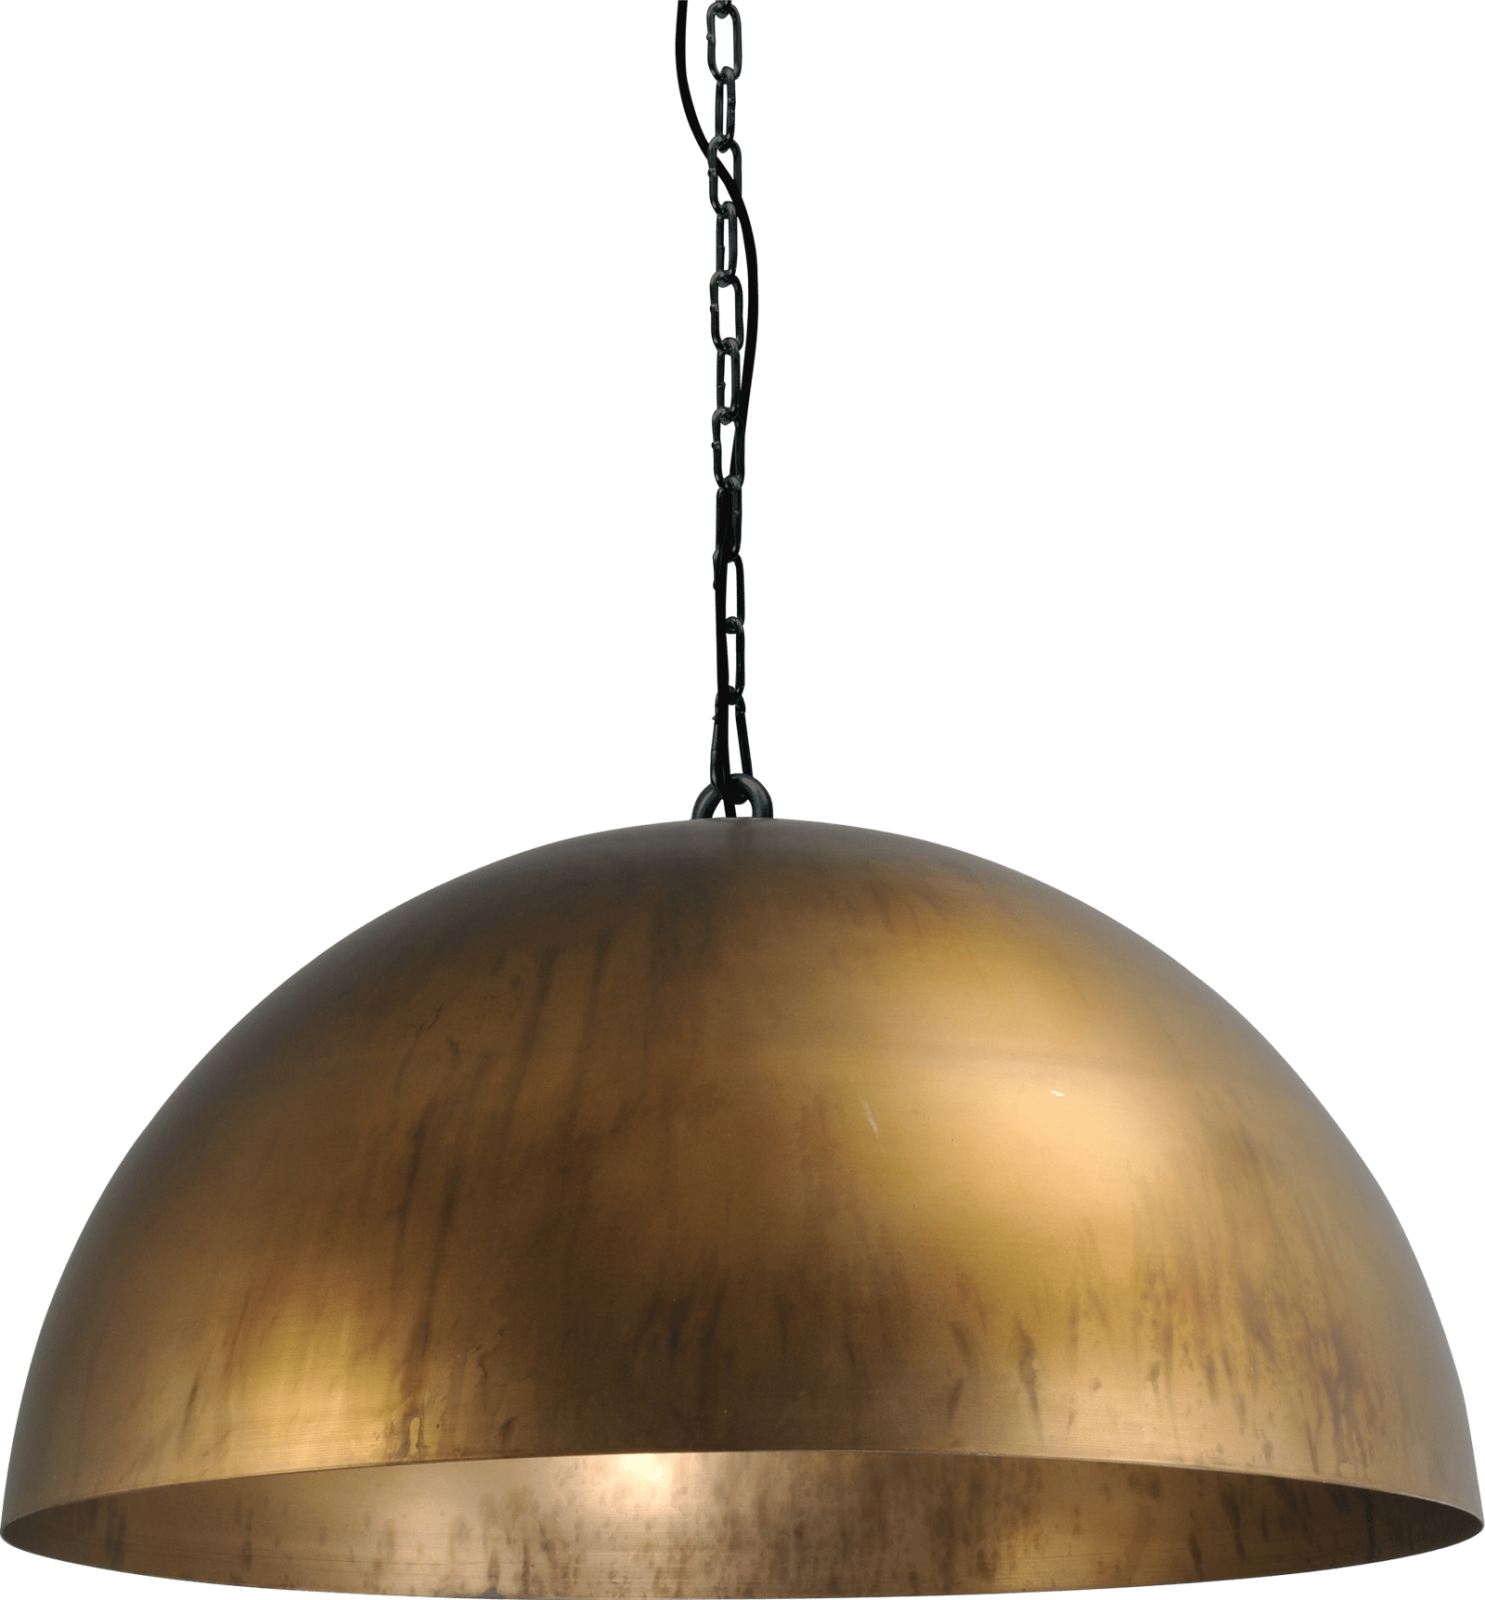 Larino Antique Brass HL LARINO D.60CM ANTIQUE BRASS EXTERIOR